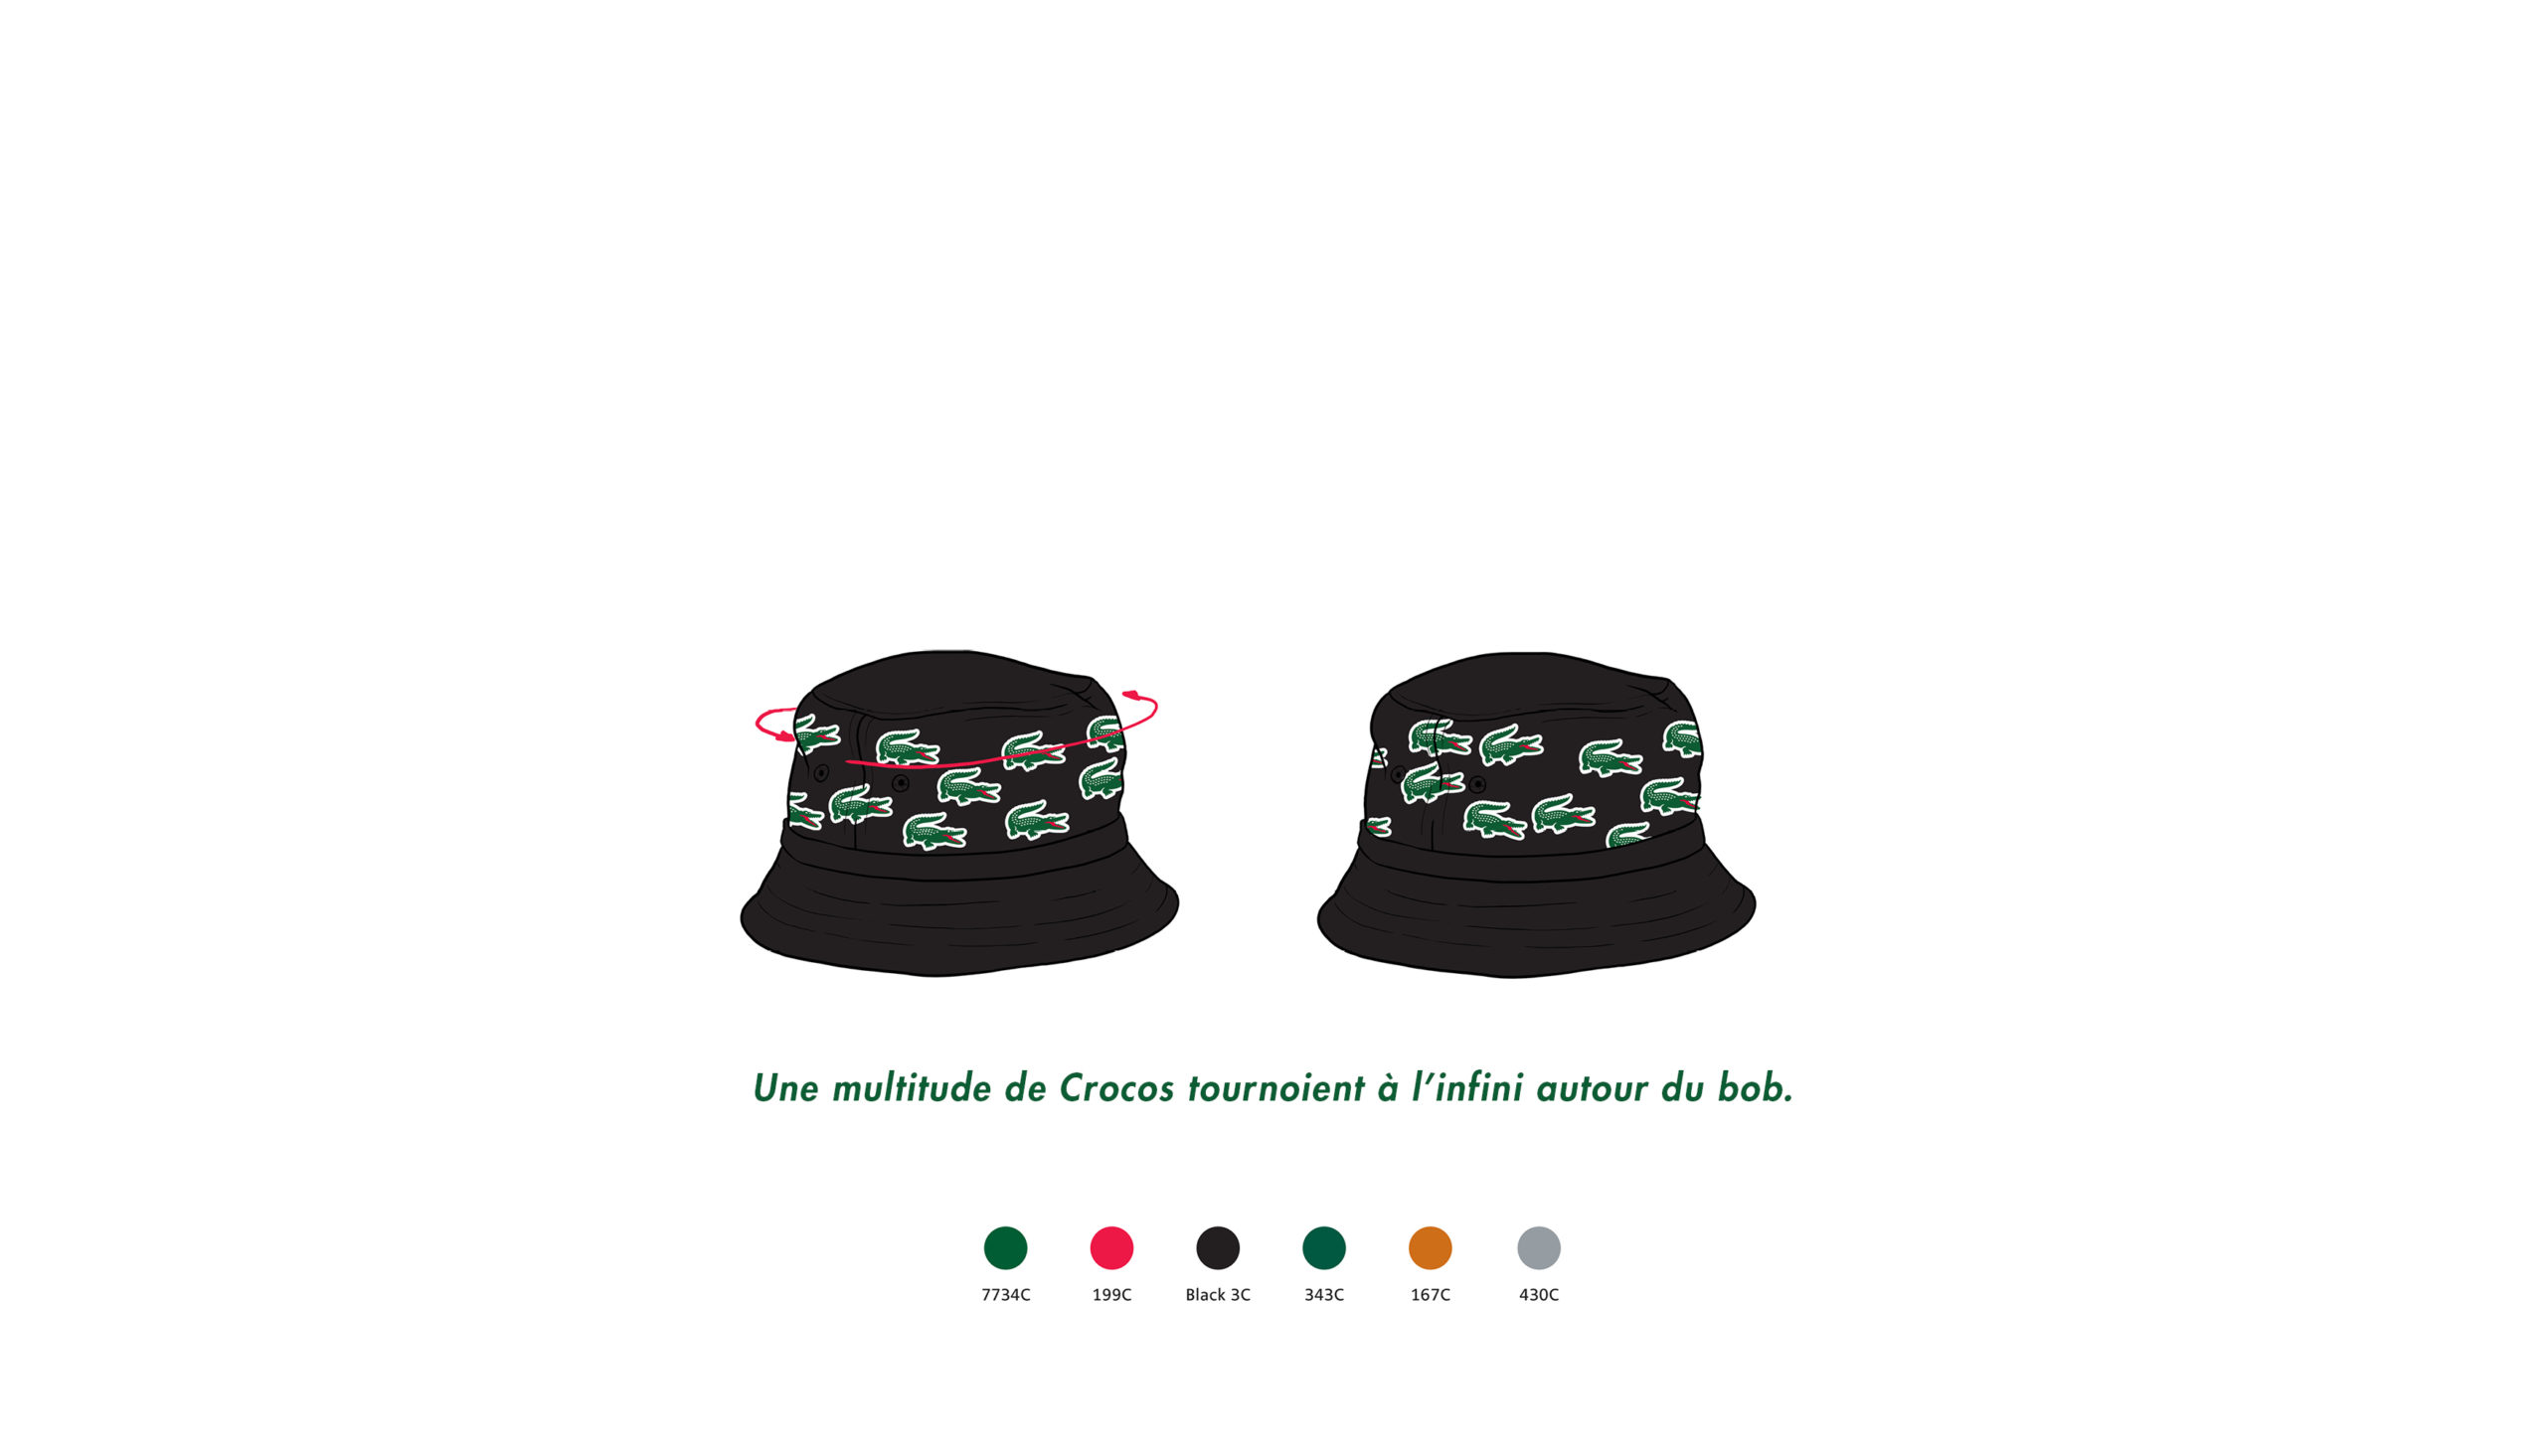 LACOSTE_STICKERS_HOBBYNOTE_R_0839